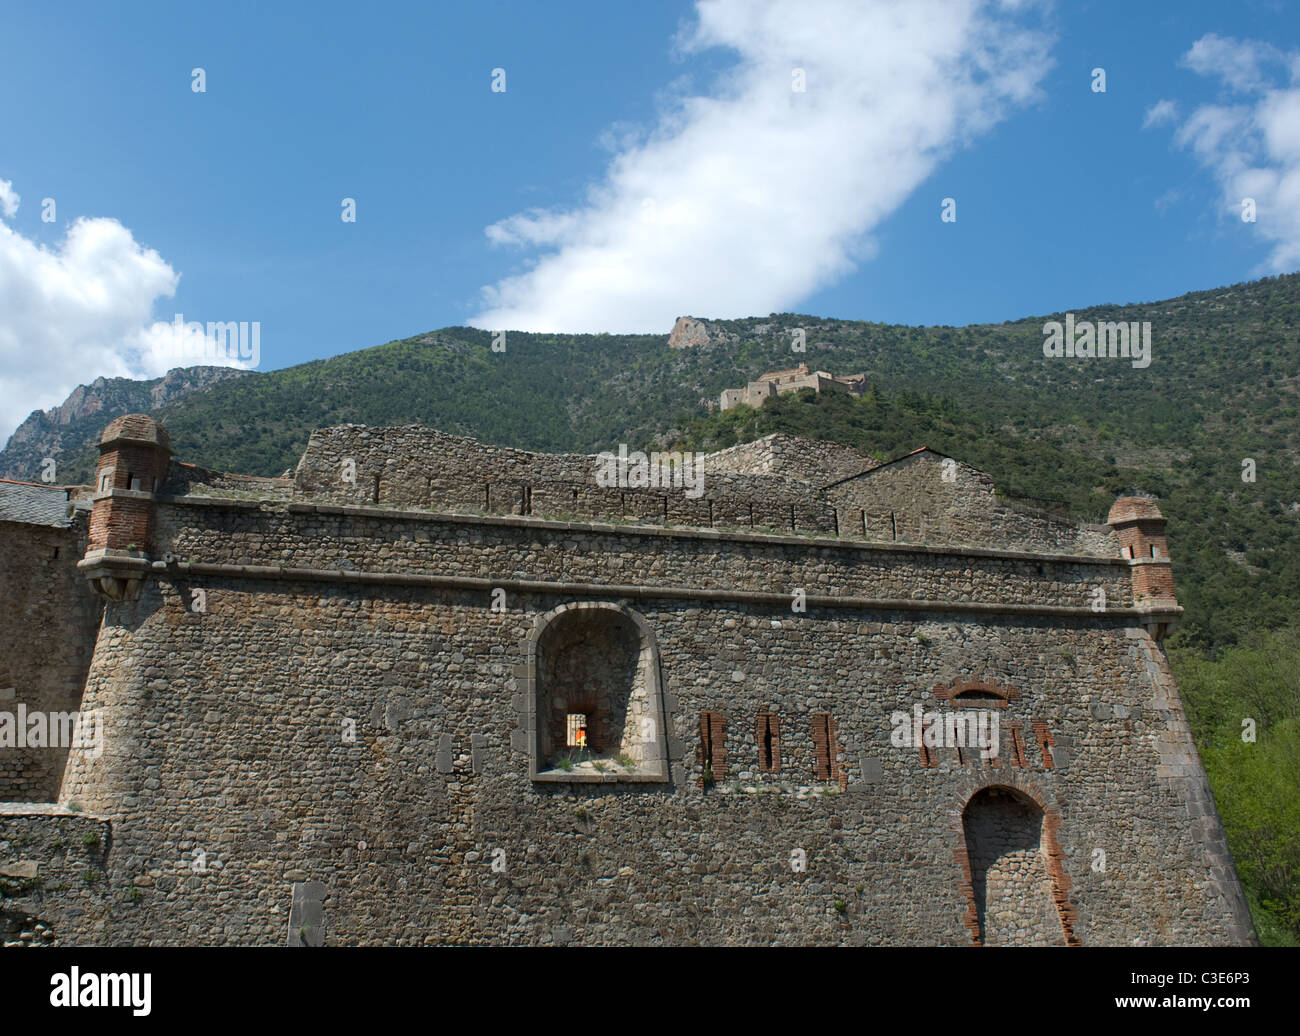 Vauban's fortification of the village Villefranche-de-Conflent: in Roussillon with Fort Liberia - Stock Image